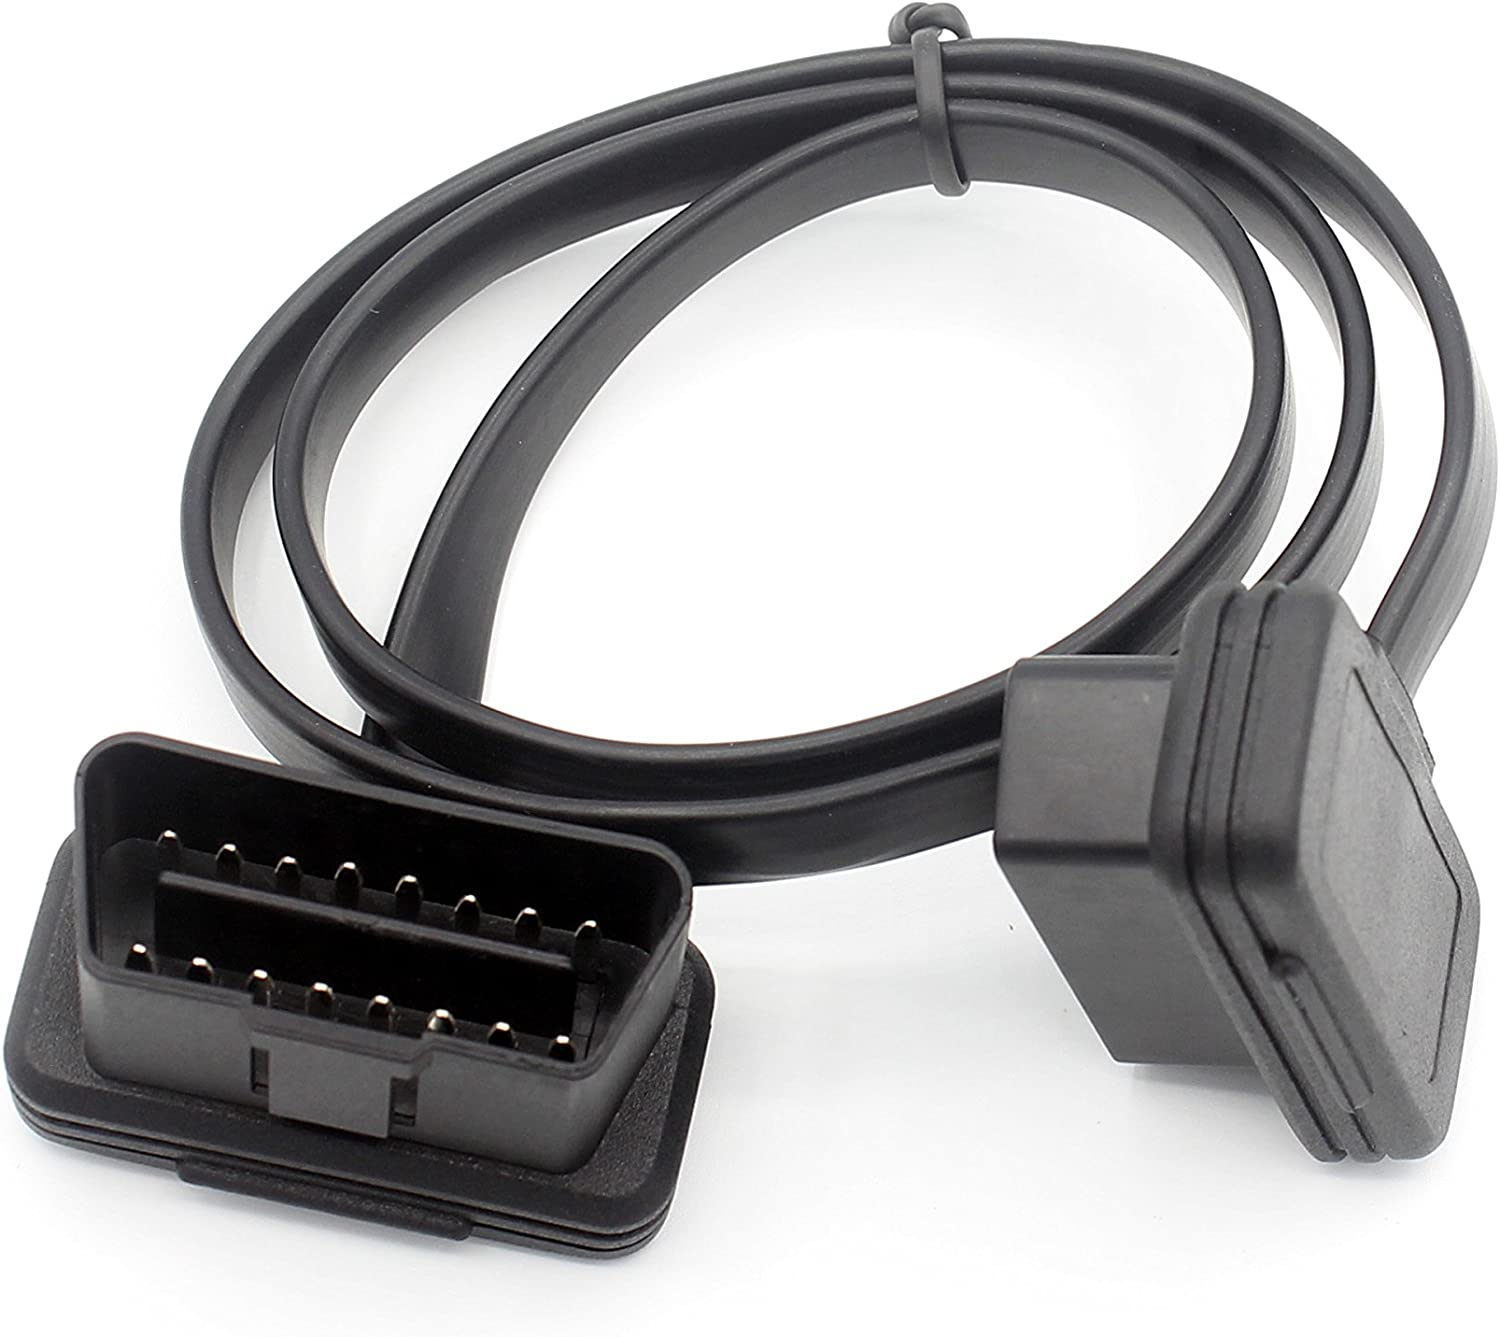 Right Angle Low Profile Diagnostic Cord with Power Switch to Avoid Battery Drain for All OBD2 Car Device LoongGate OBD II Extension Cable Male to Female 16 Pin Pass Through 60cm